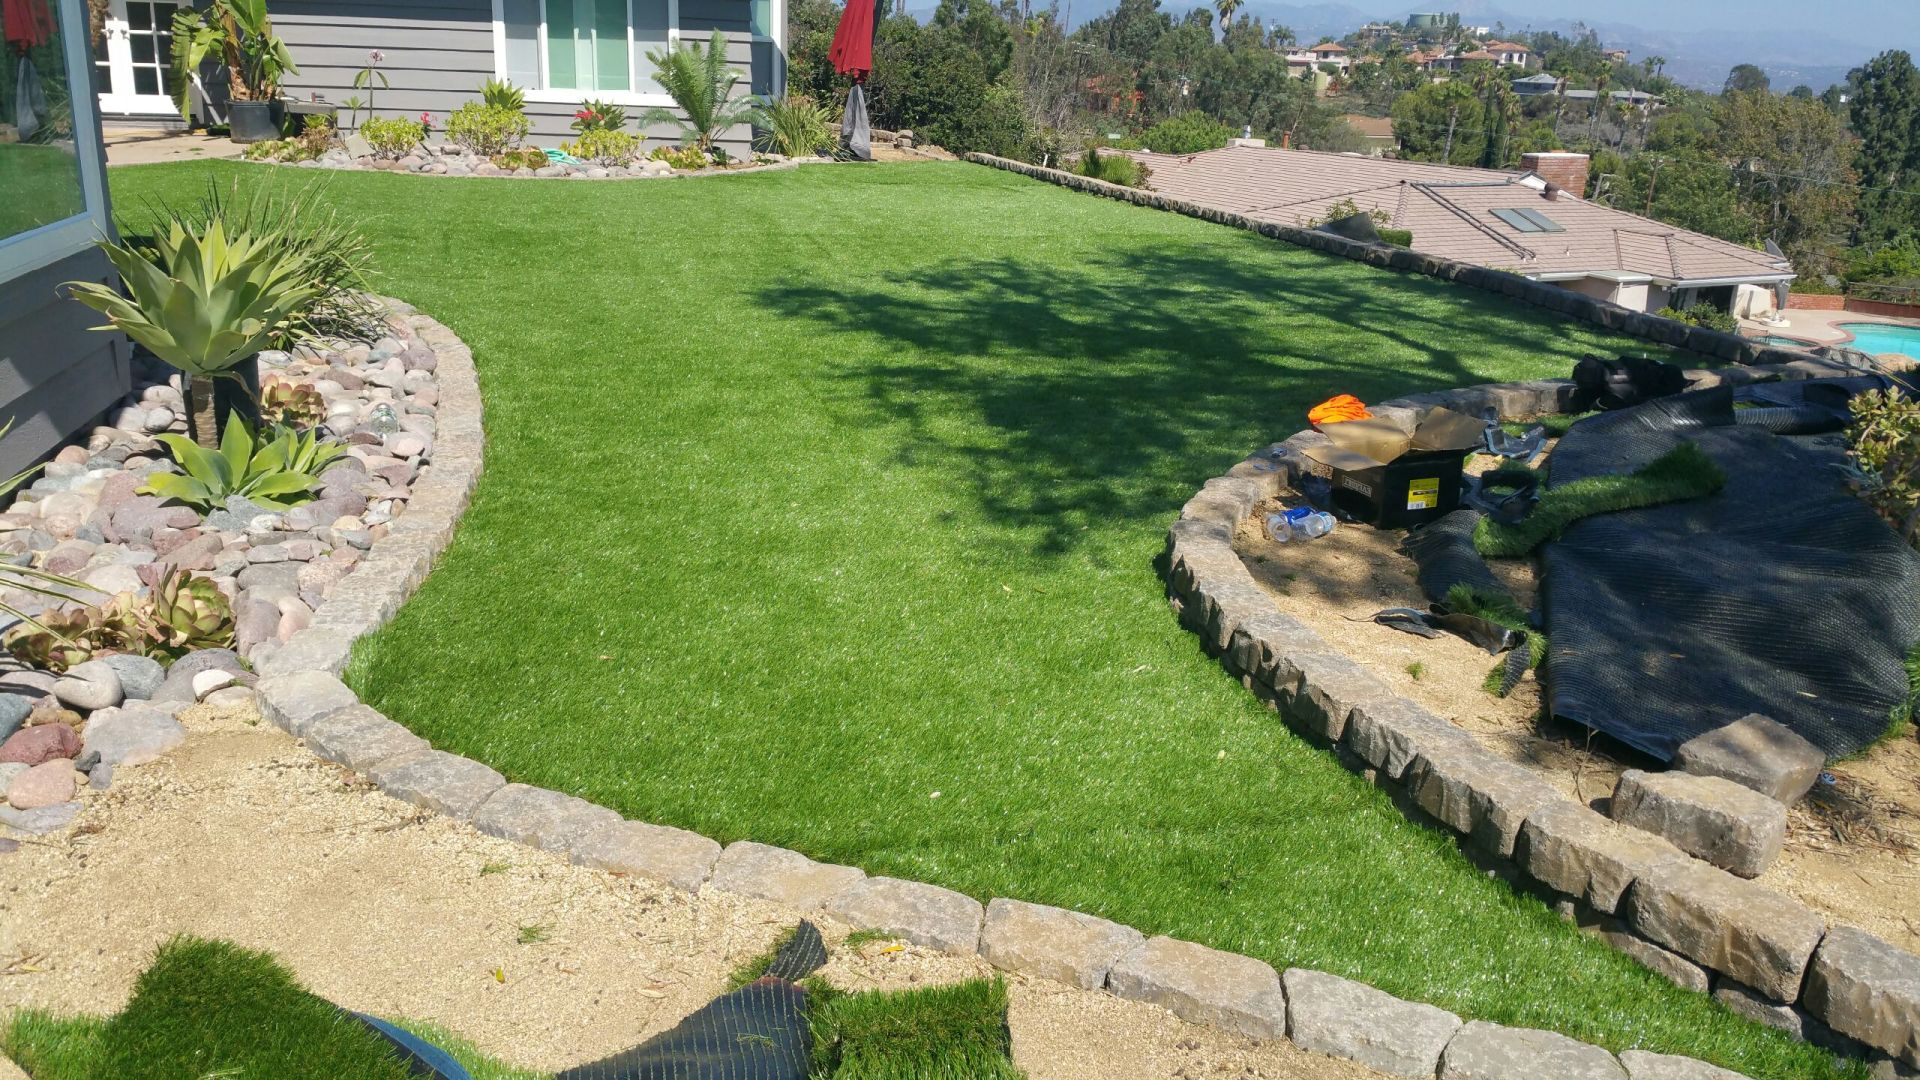 Grass with mow strip and a few plants with pebbles